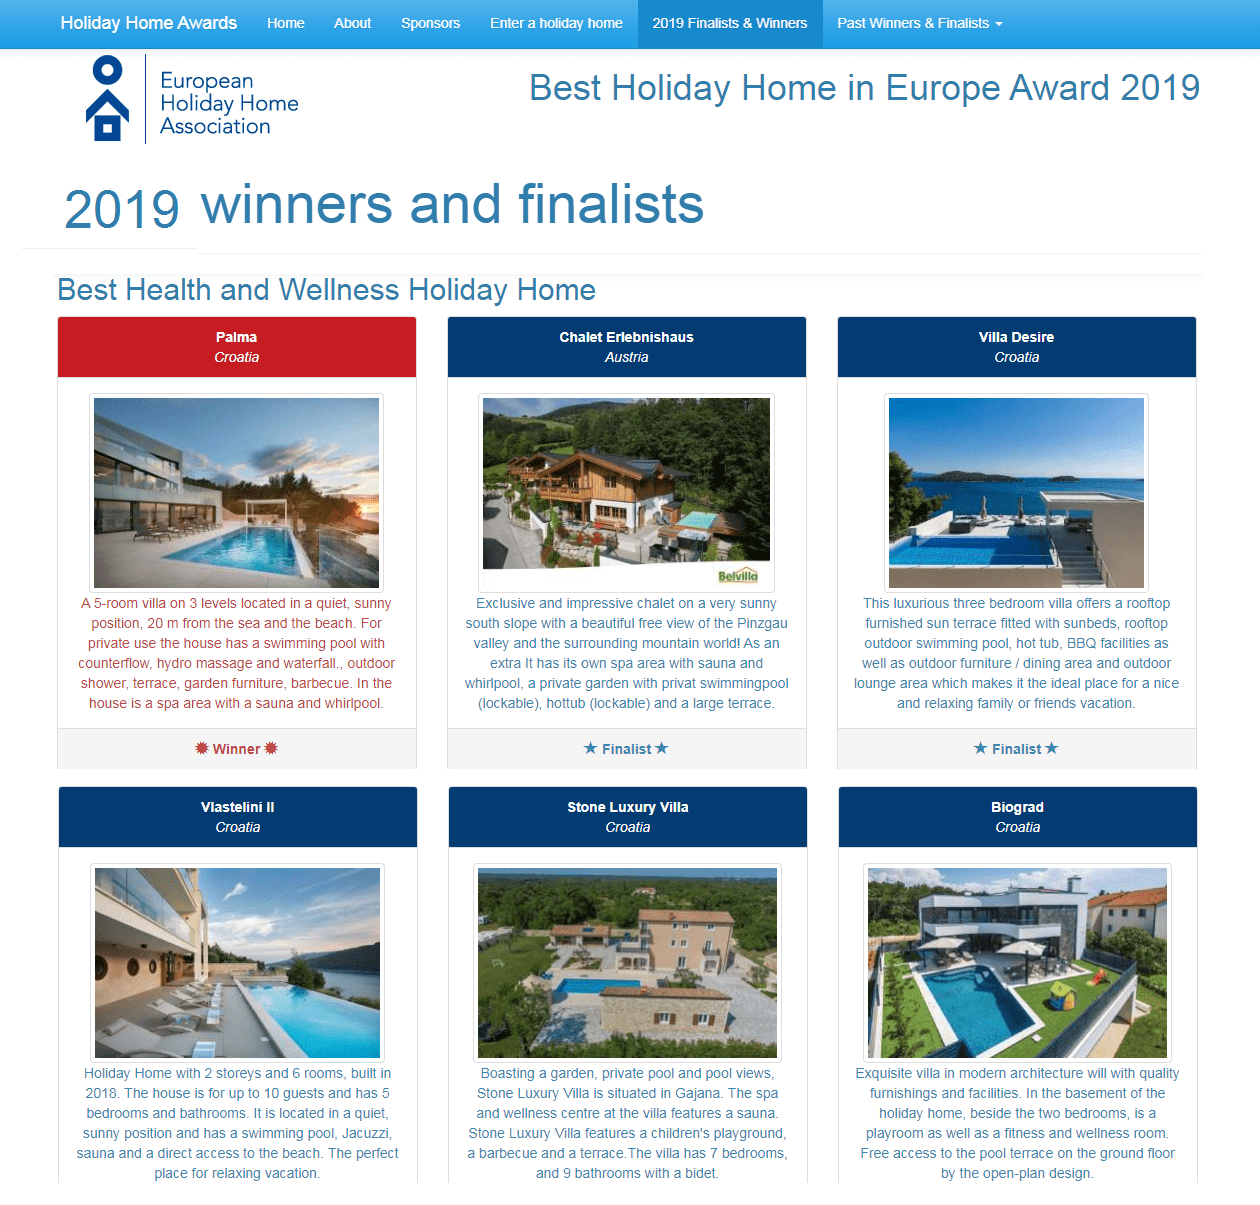 Best Health and Wellness Holiday Home 2019